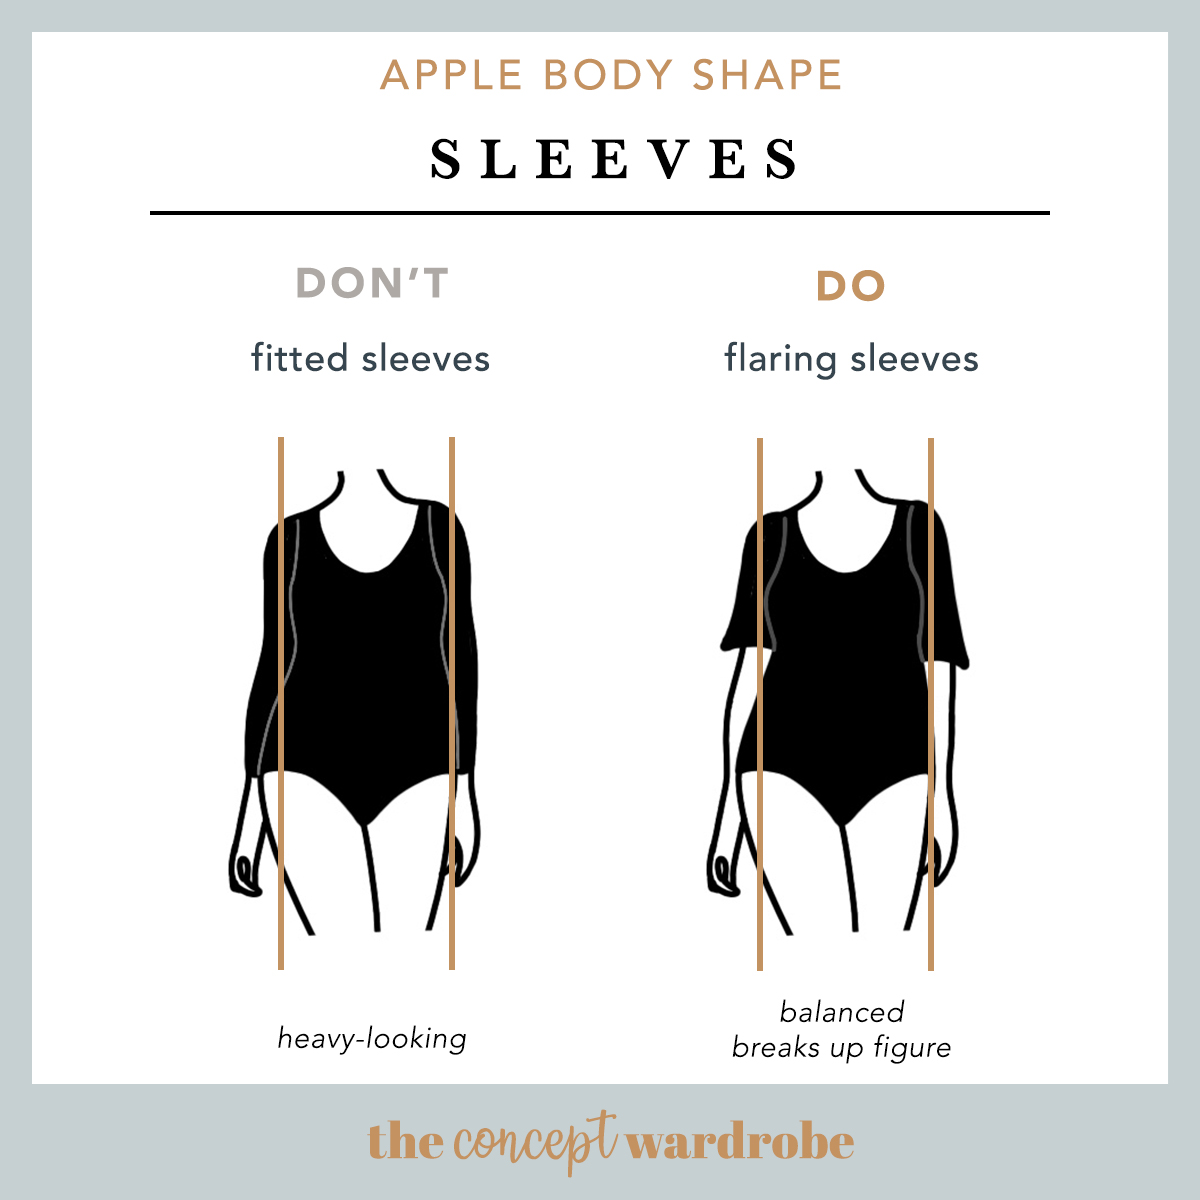 Apple Body Shape Sleeves Do's and Don'ts - the concept wardrobe